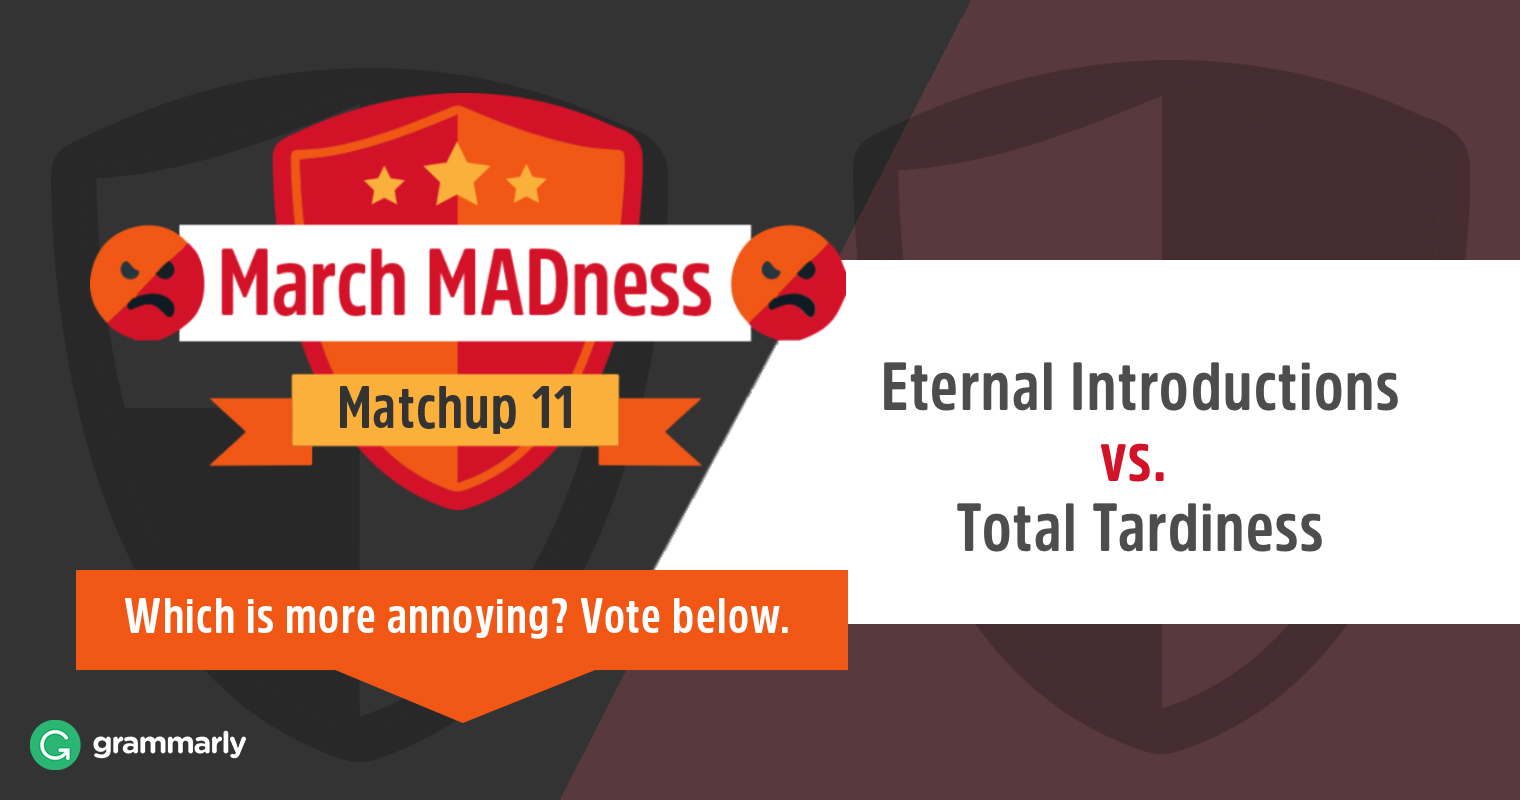 March MADness: Eternal Introductions vs. Total Tardiness